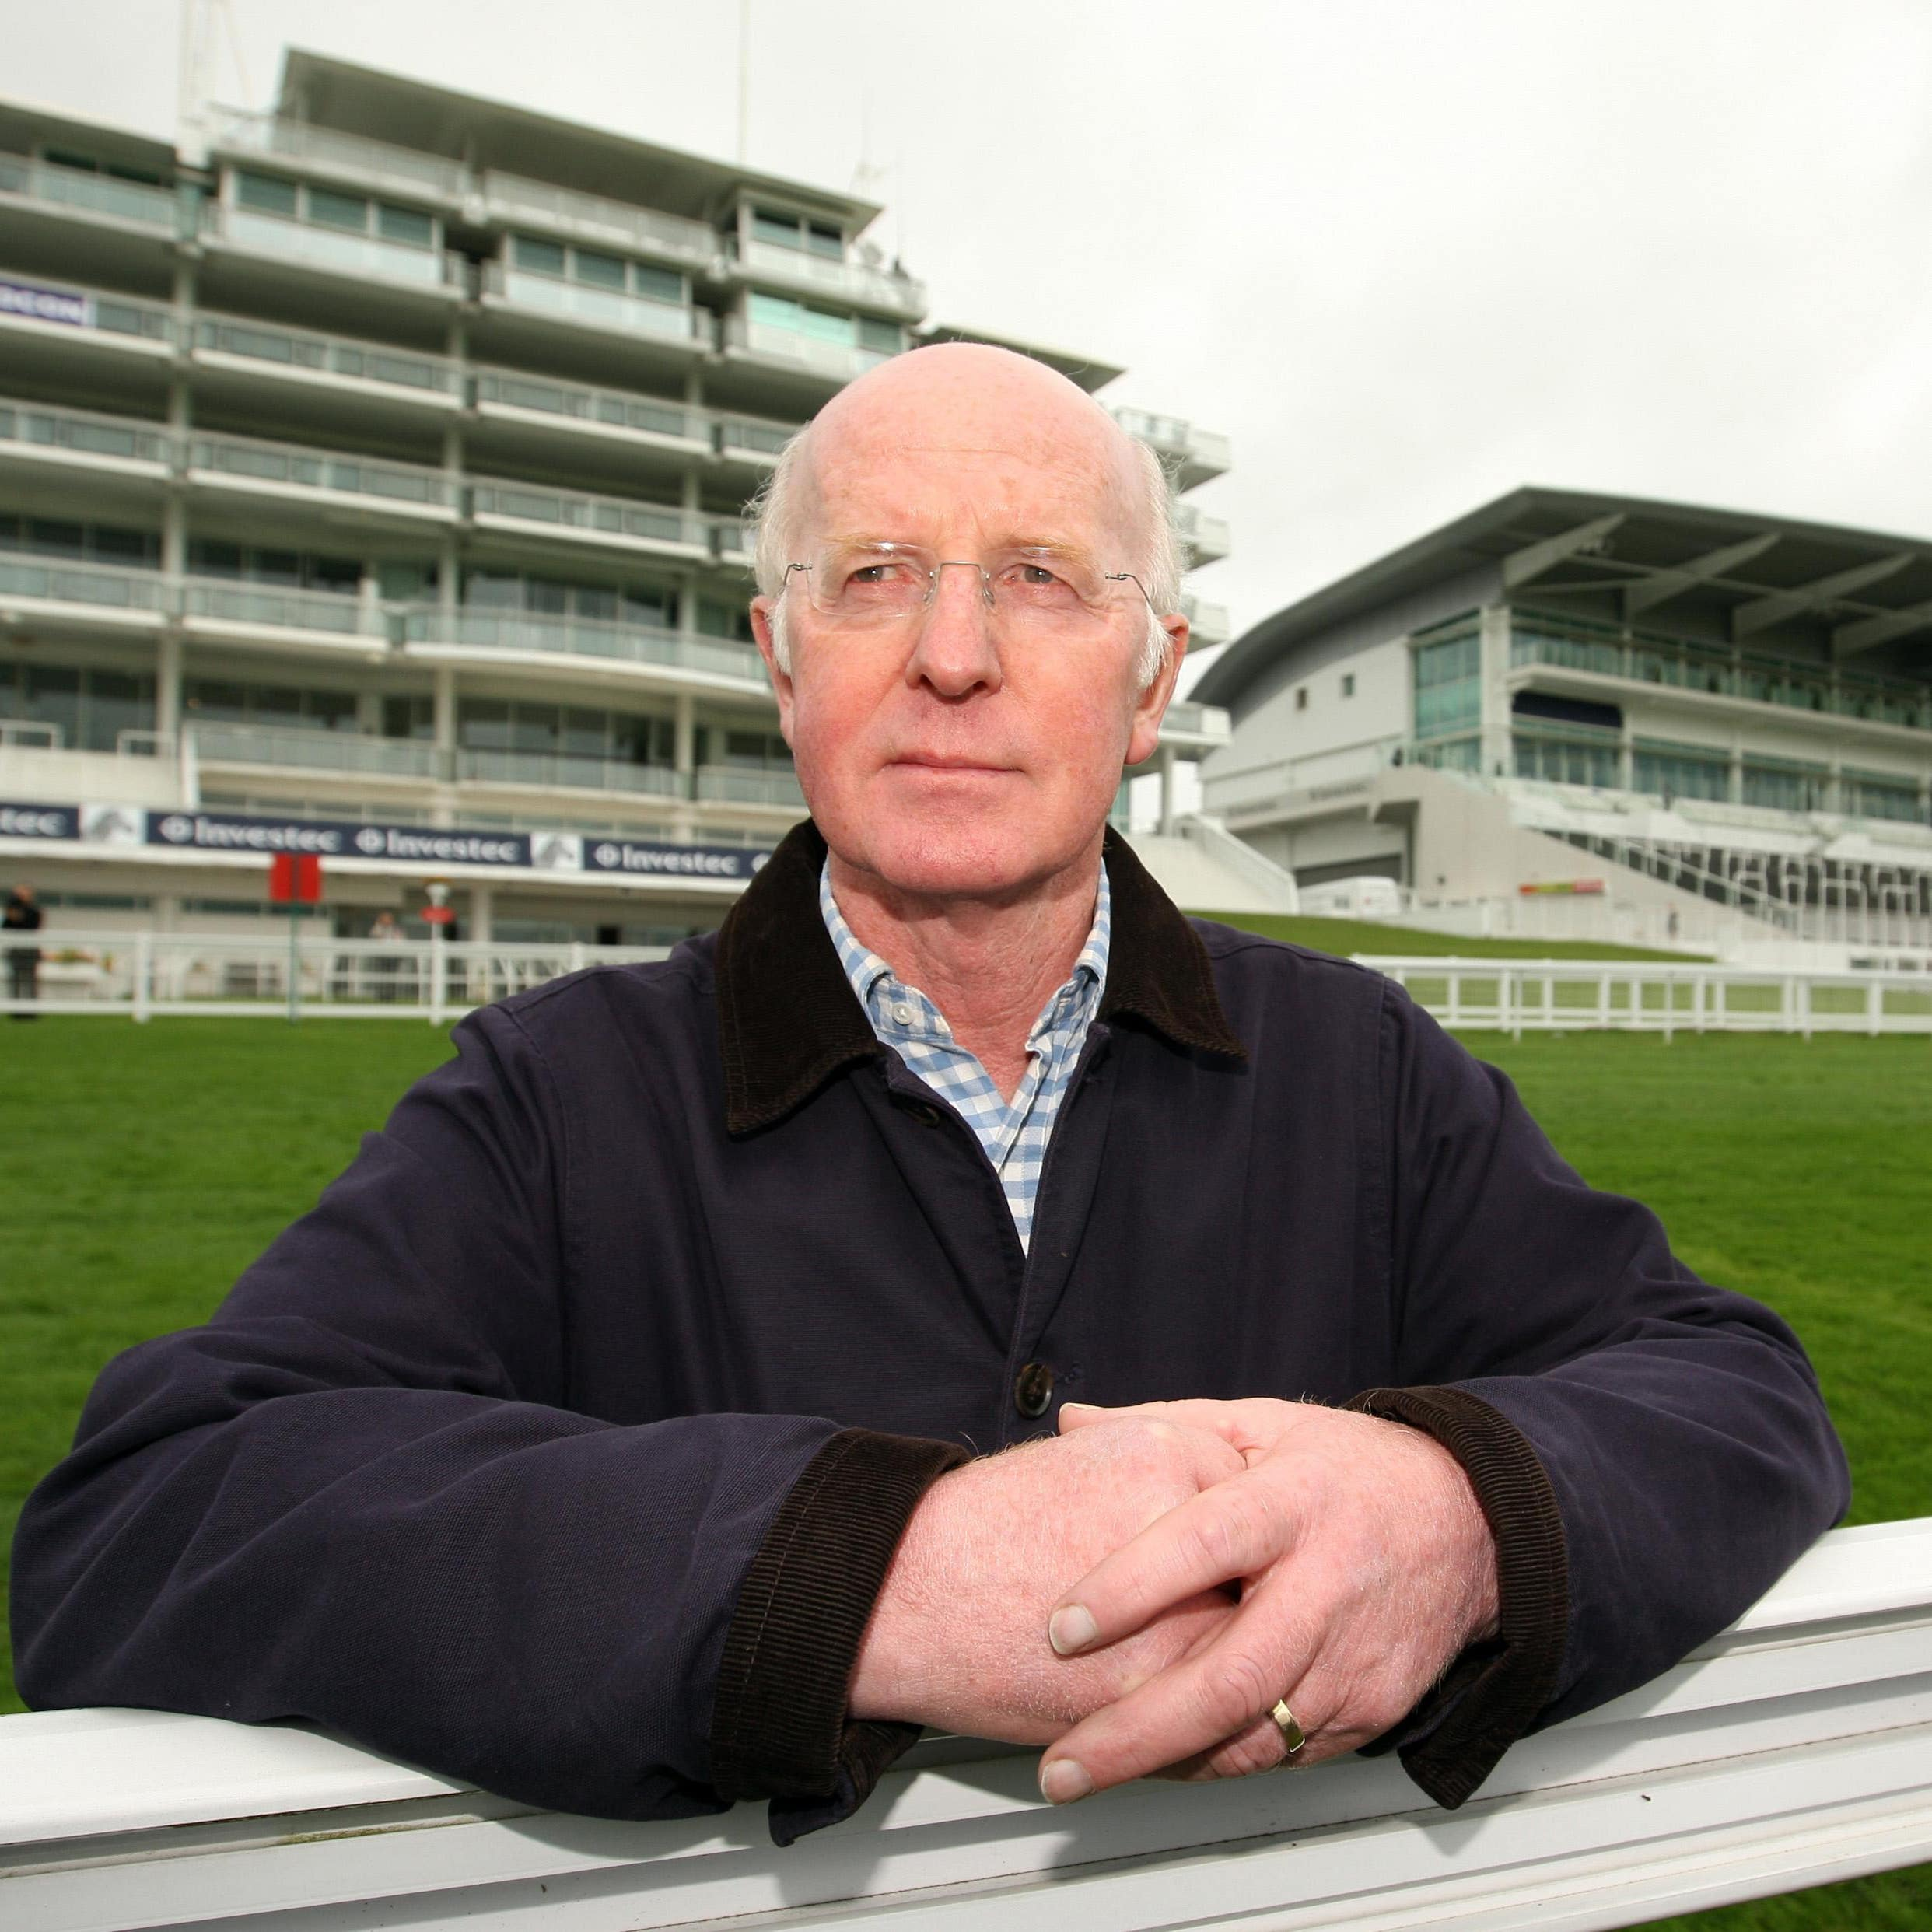 John Oxx, pictured at Epsom, where he has enjoyed much big-race success